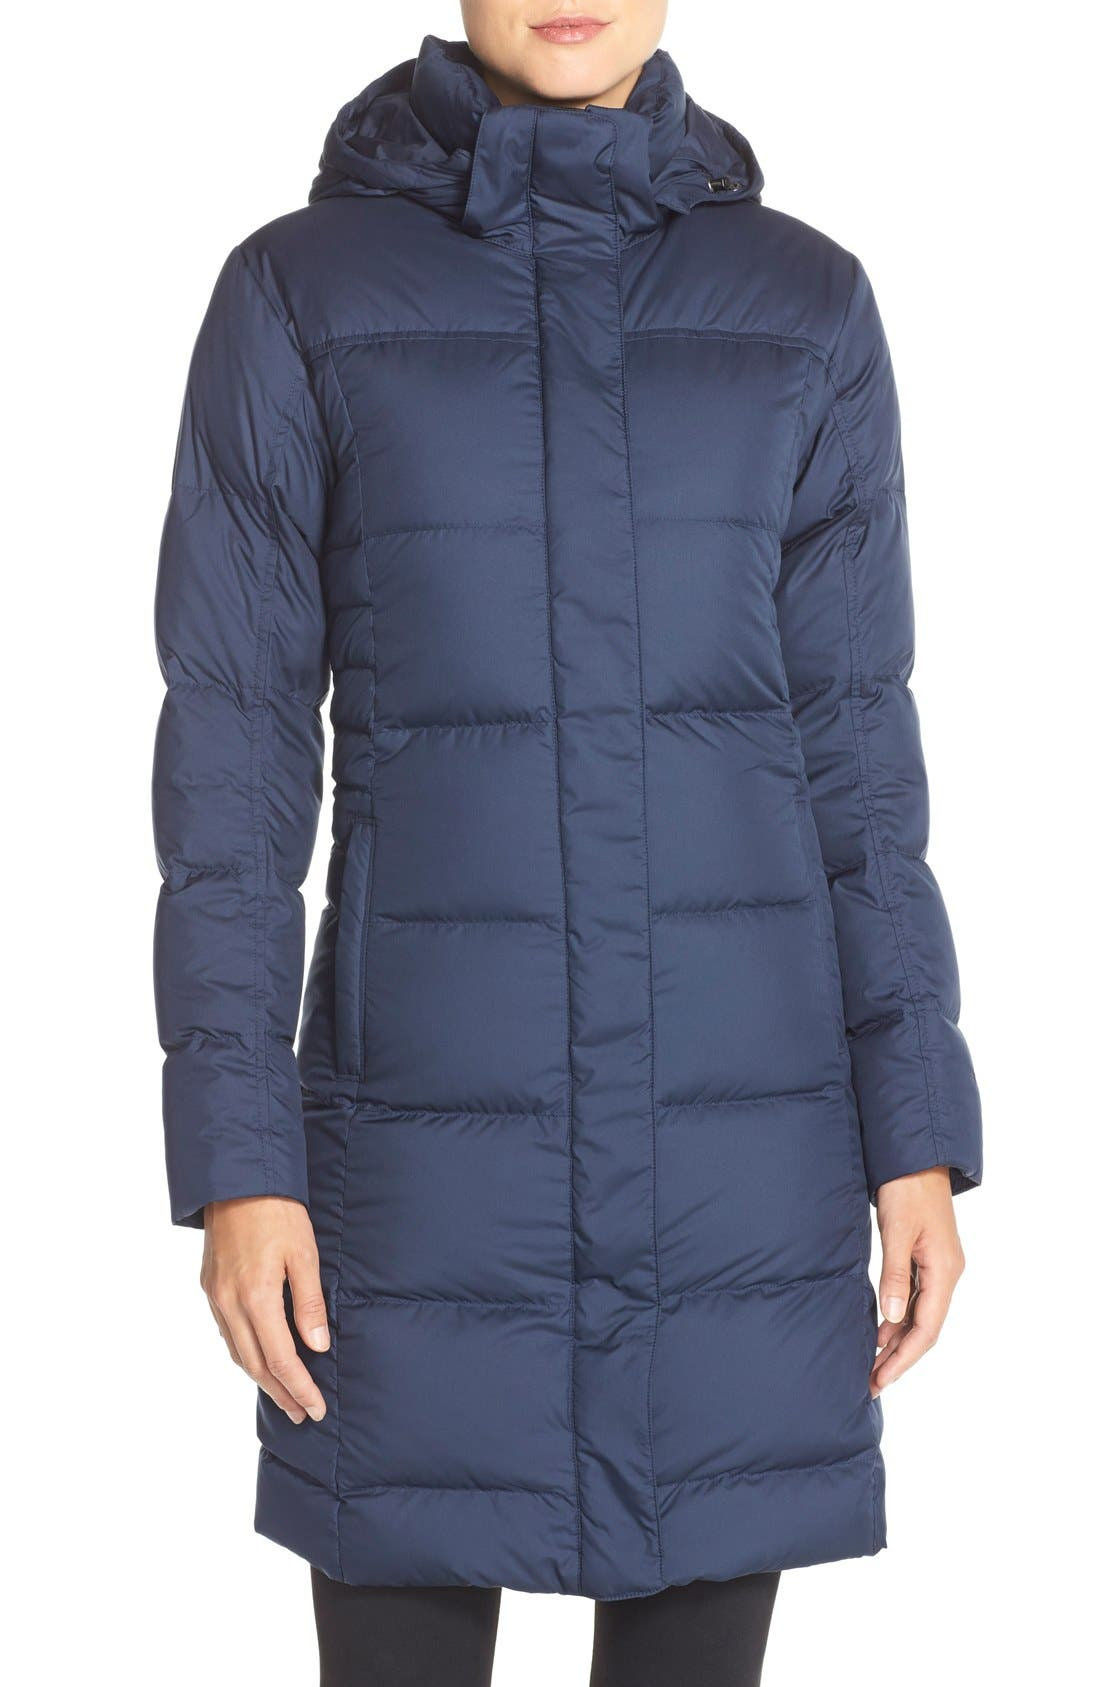 Alternate Image 1 Selected - Patagonia 'Down with It' Water RepellentParka